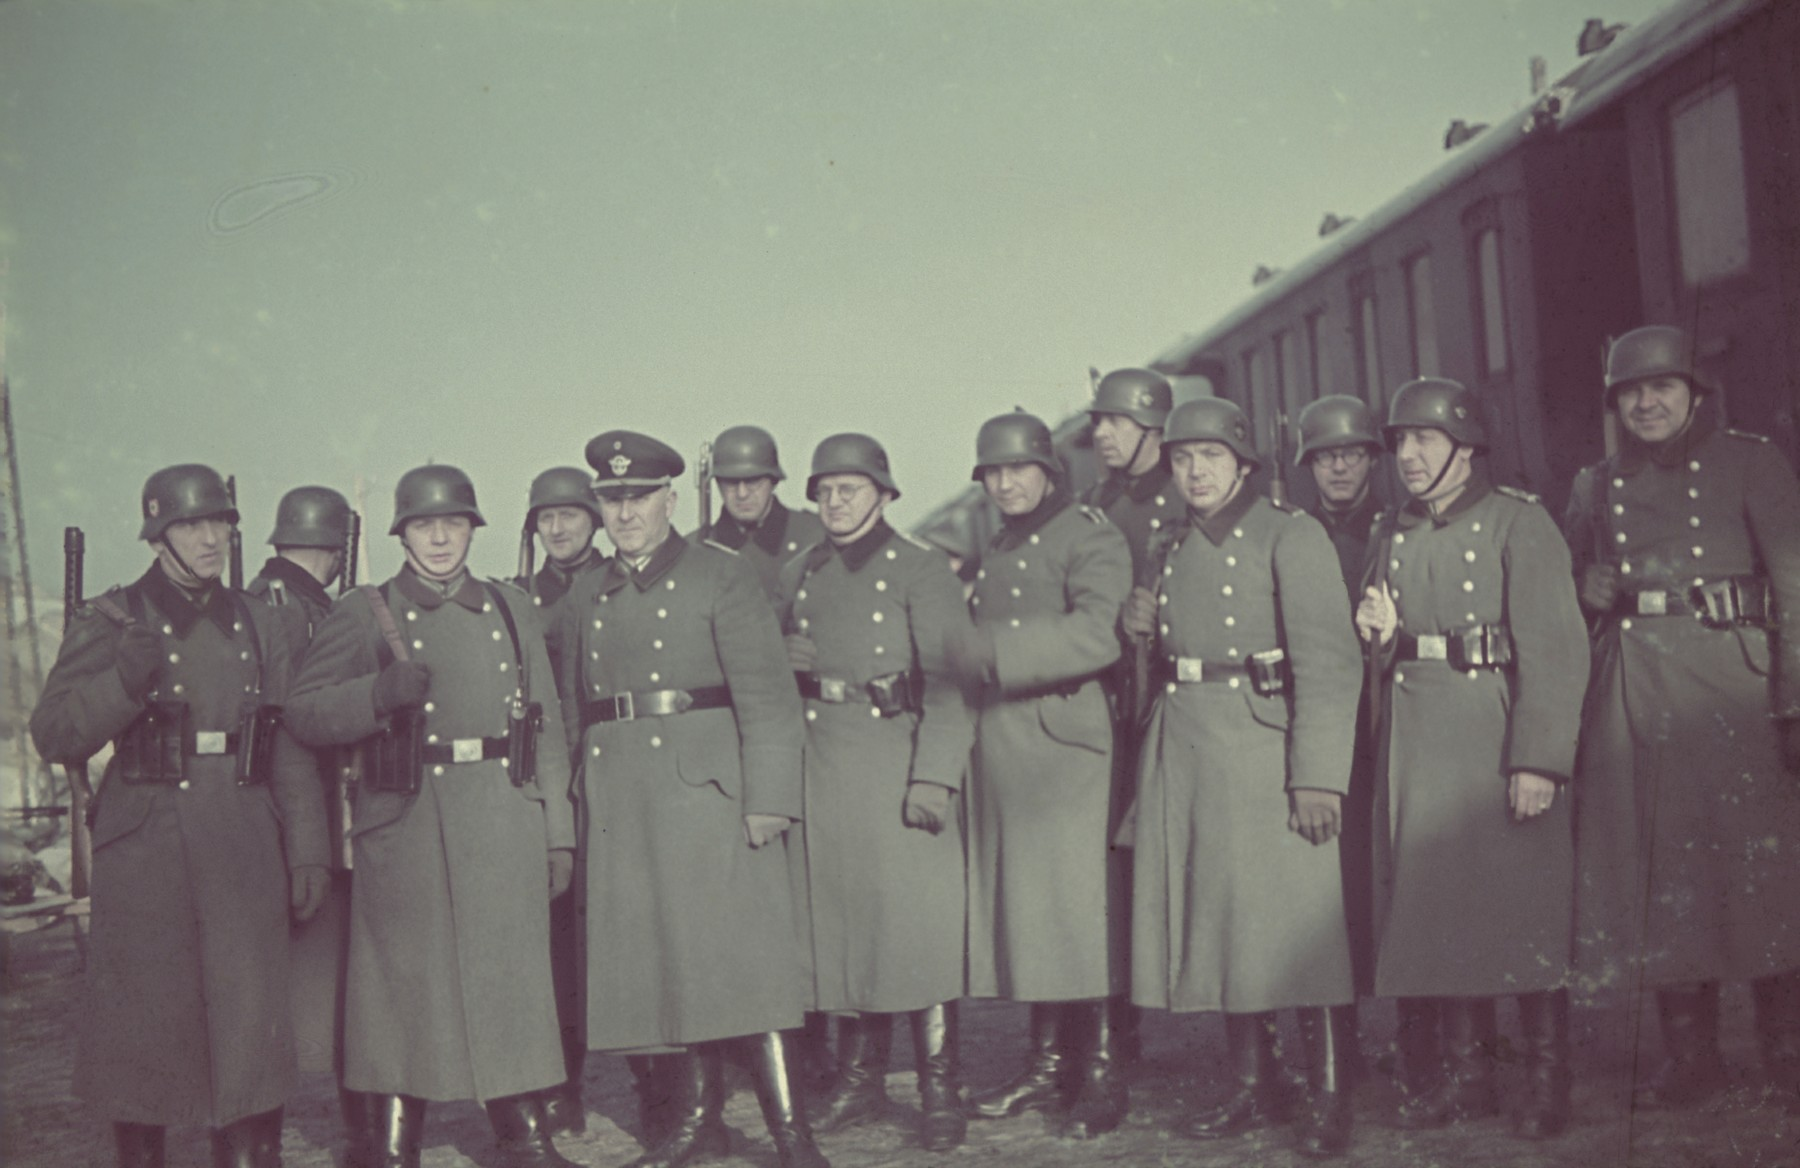 "A unit of deportation police (Evakuierungspolizei) poses in the Lodz ghetto in the spring of 1942.  Original German caption: ""Evakueringspolizei"" (deportation police), spring 1942, #128 (number somewhat blurred and hard to read.)"